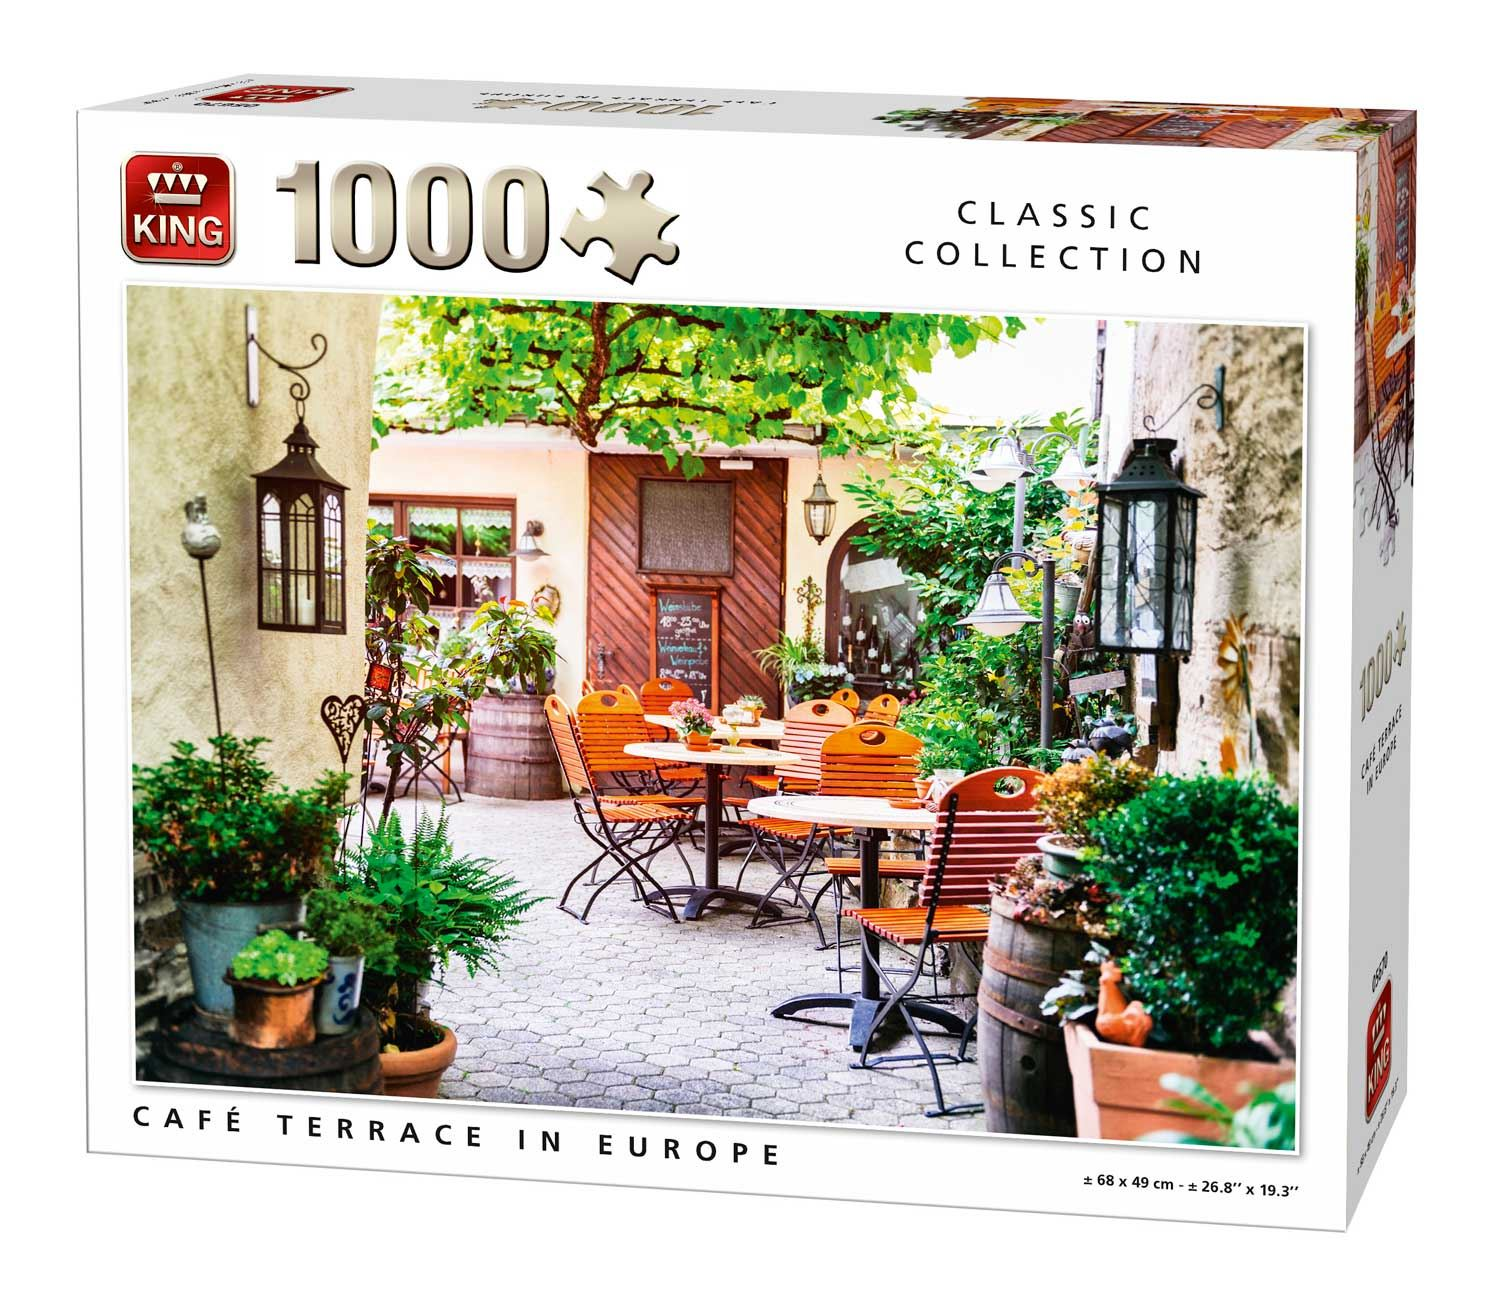 King Cafe Terrace In Europe Jigsaw Puzzle (1000 Pieces)